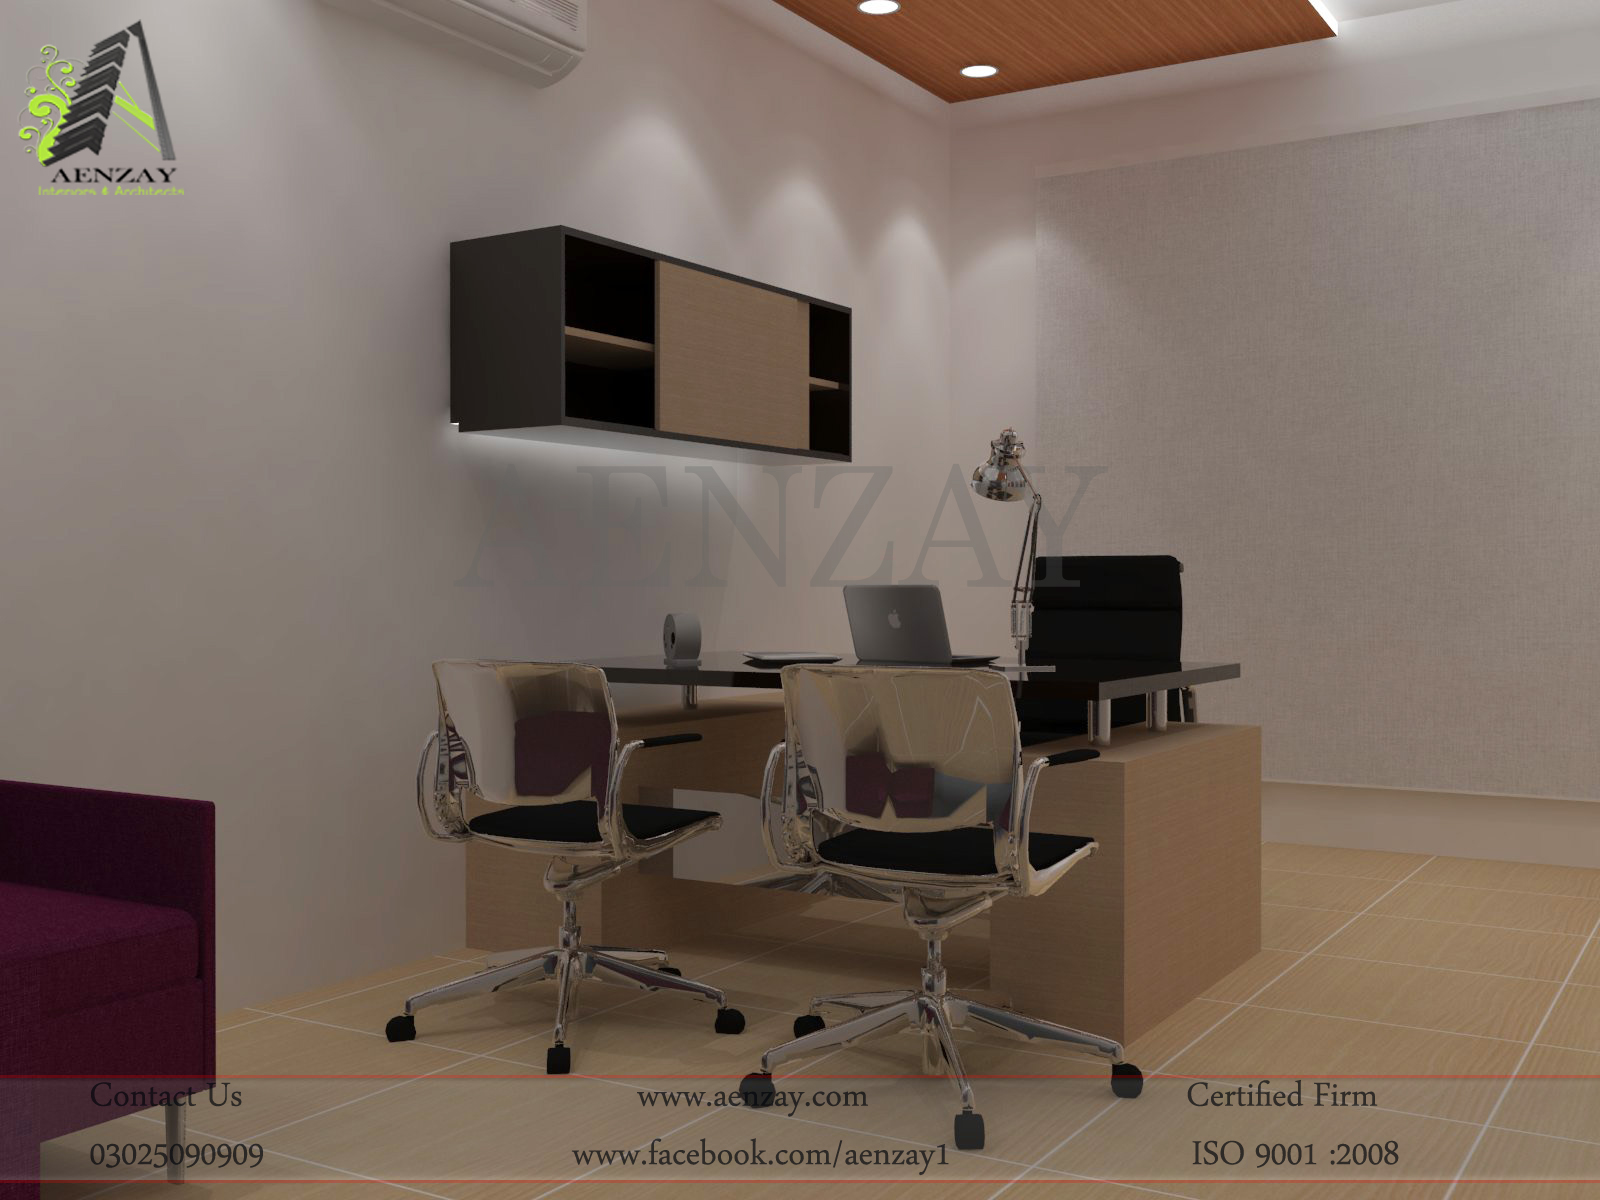 China plates project marketing director office design by for Office design jakarta